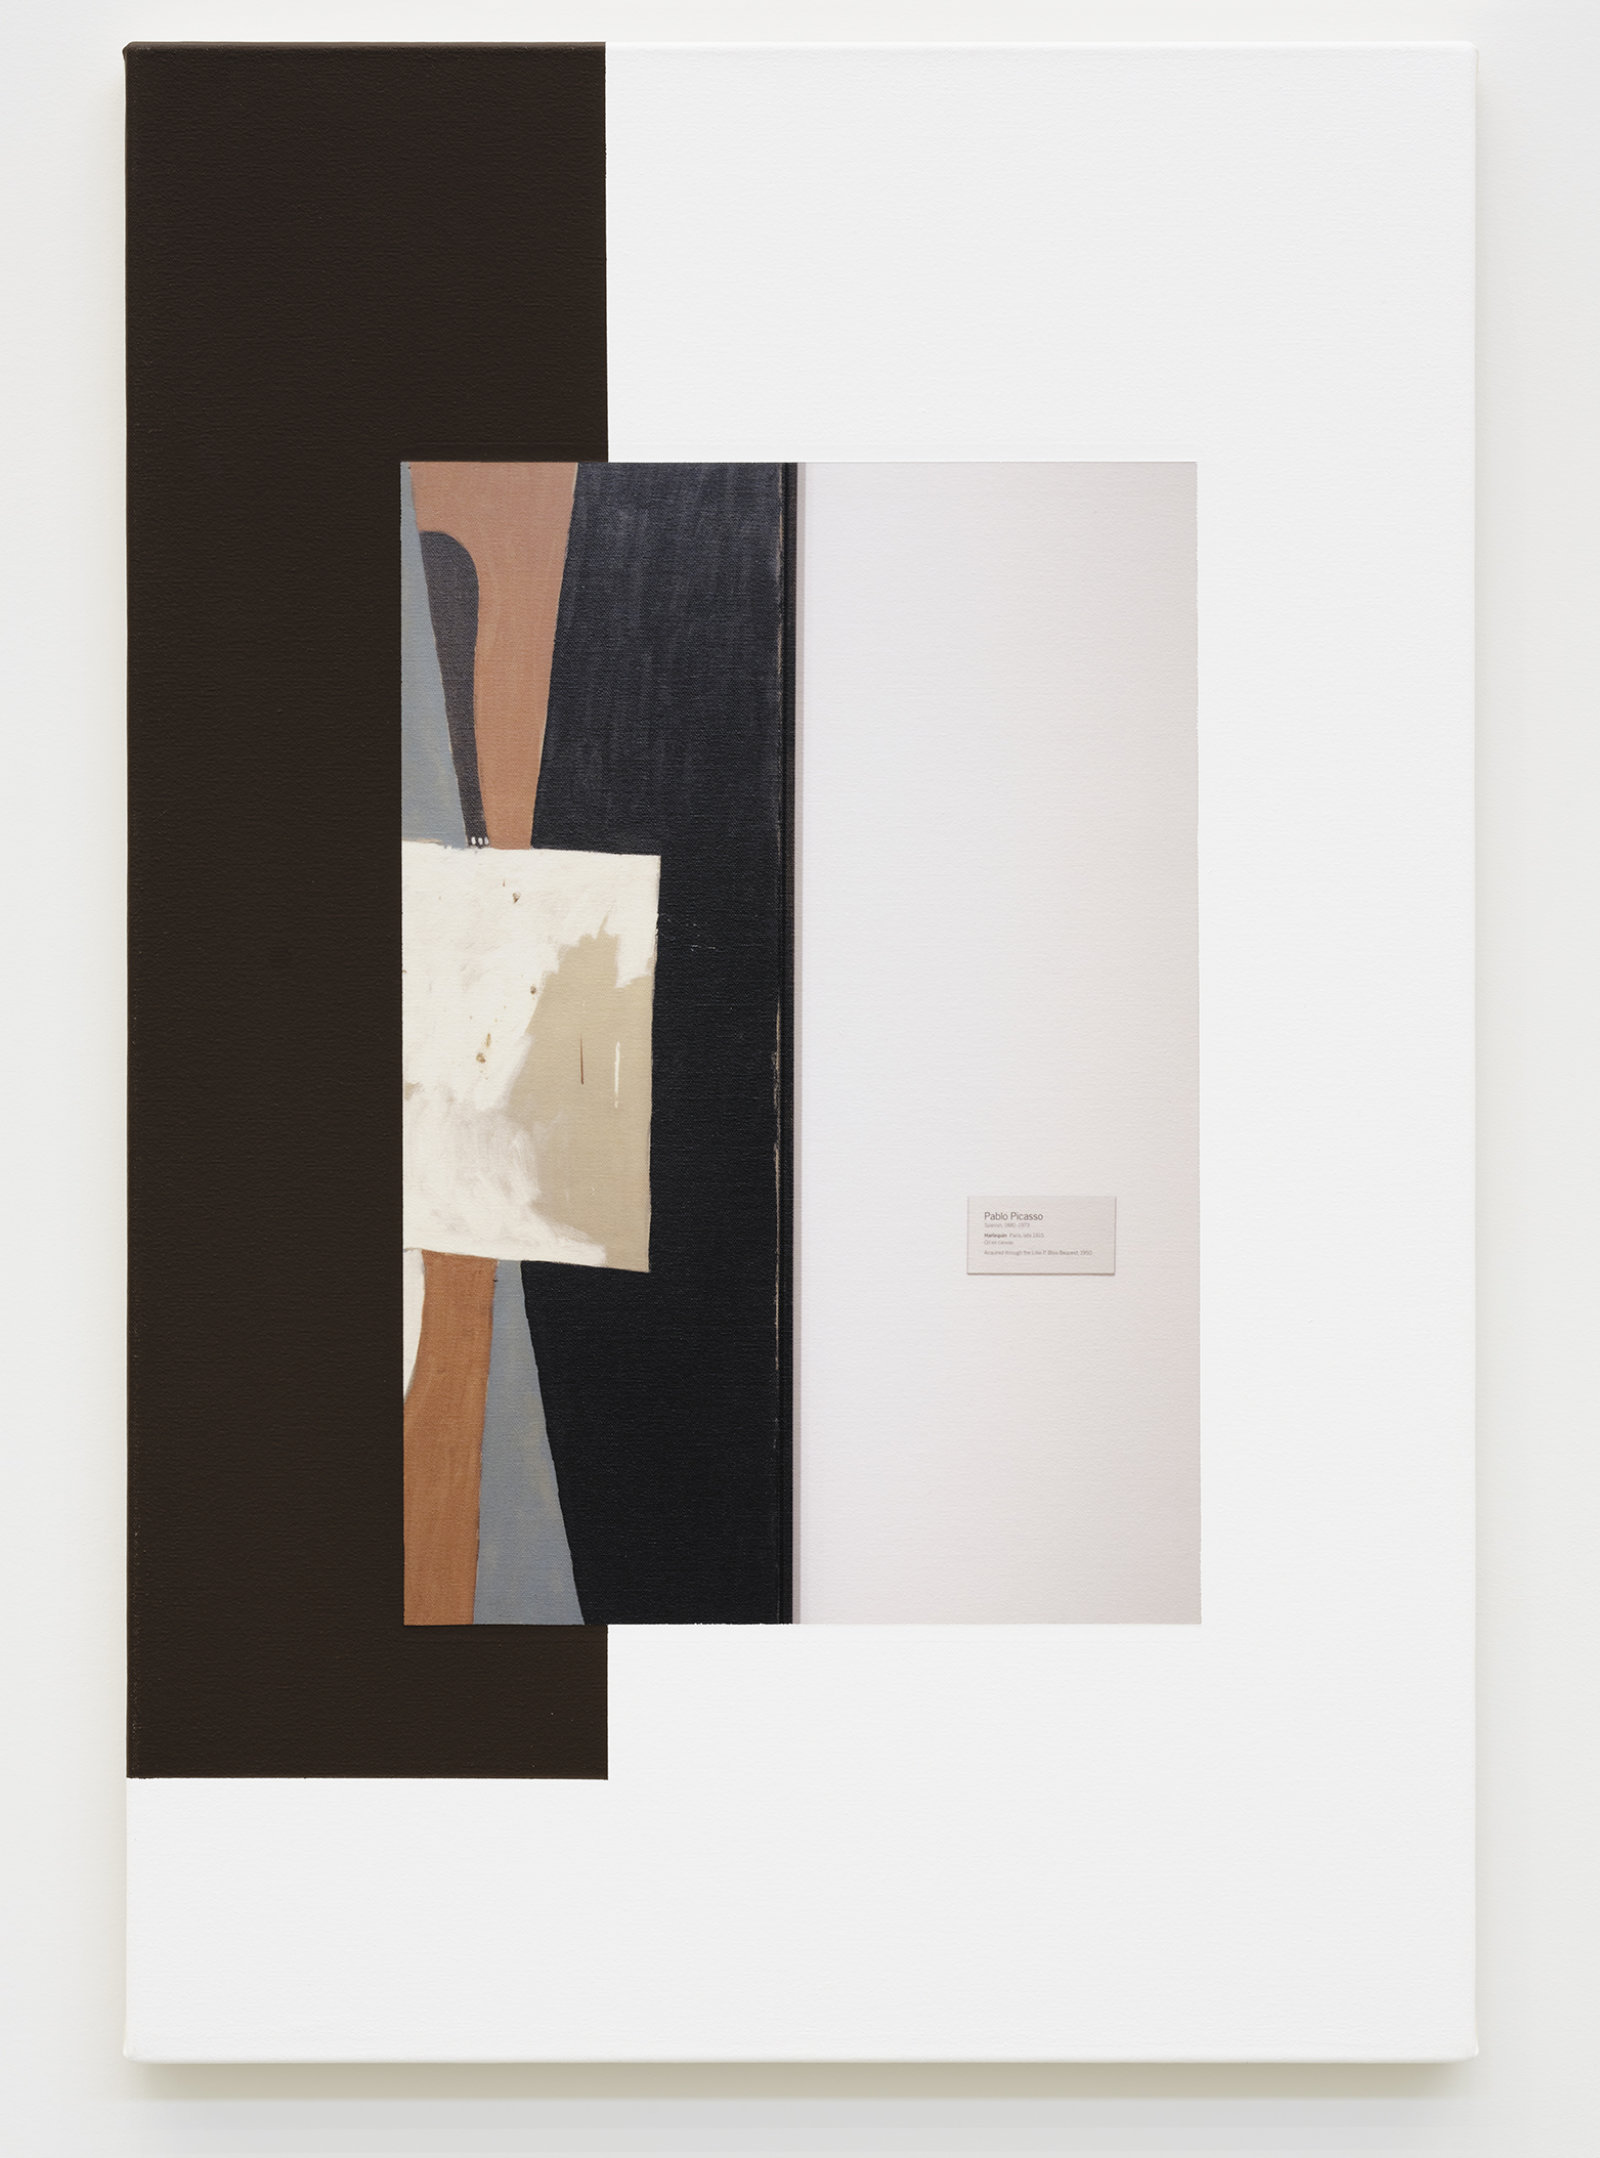 Ian Wallace, Abstract Composition (with Picasso), 2011, photolaminate with acrylic on canvas, 36 x 24 in. (91 x 61 cm) by Ian Wallace